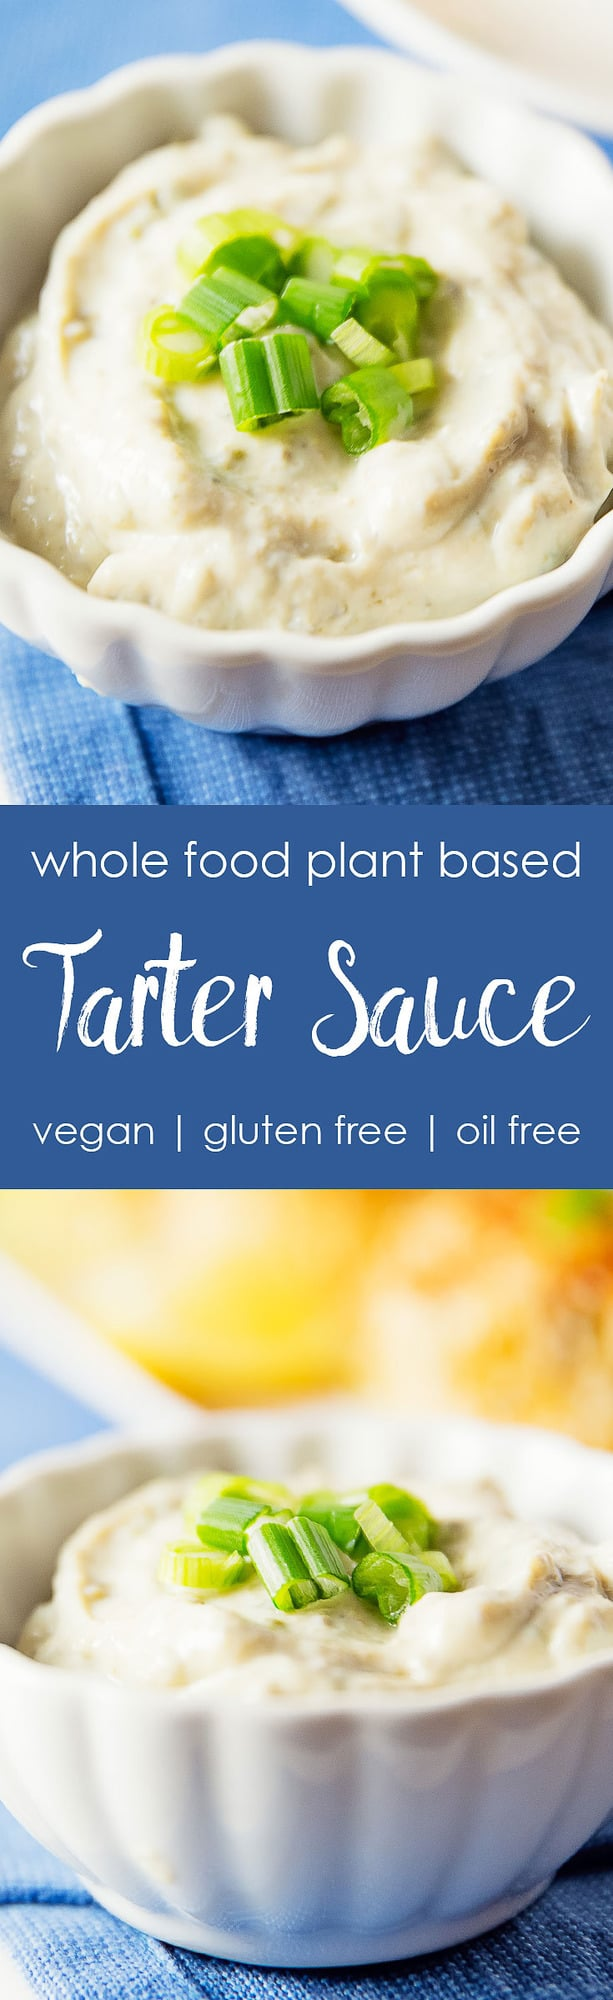 tarter sauce, silken tofu, capers, vegan, vegetarian, whole food plant based, gluten free, recipe, wfpb, American, healthy, oil free, no refined sugar, no oil, refined sugar free, lunch, dinner, side, sauce, easy, fast, quick,